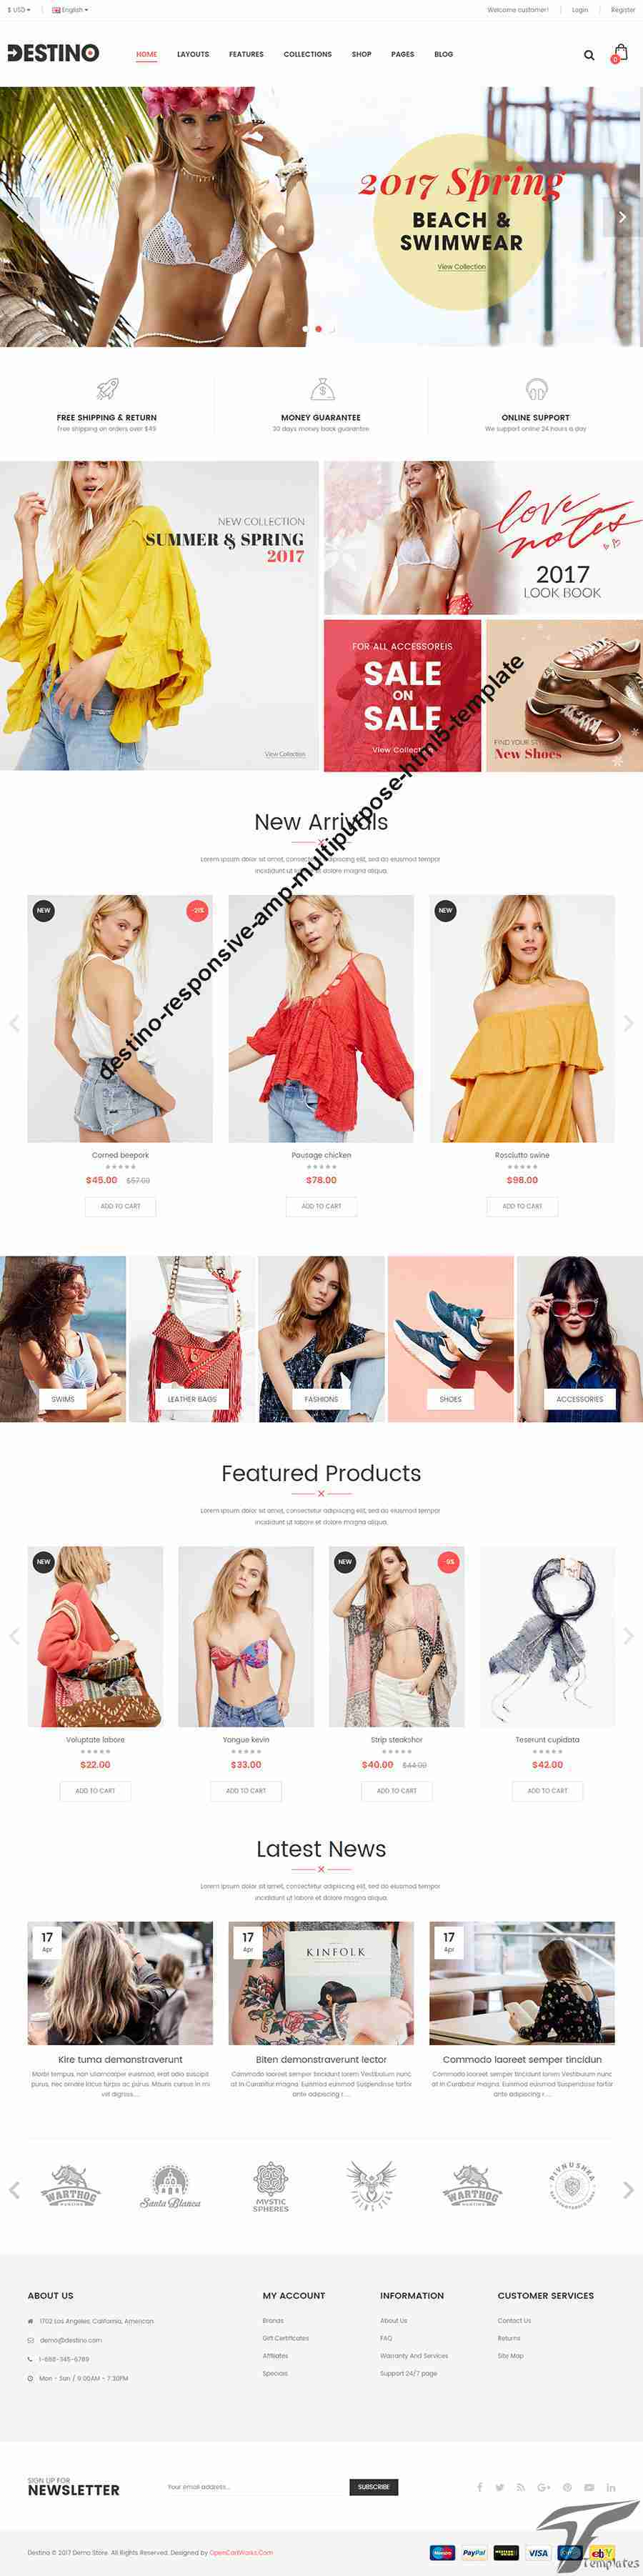 https://images.besthemes.com/images/h1_destino-responsive-amp-multipurpose-html5-template4-_-231647390/Destino_HTML_preview_img/04_home3.png